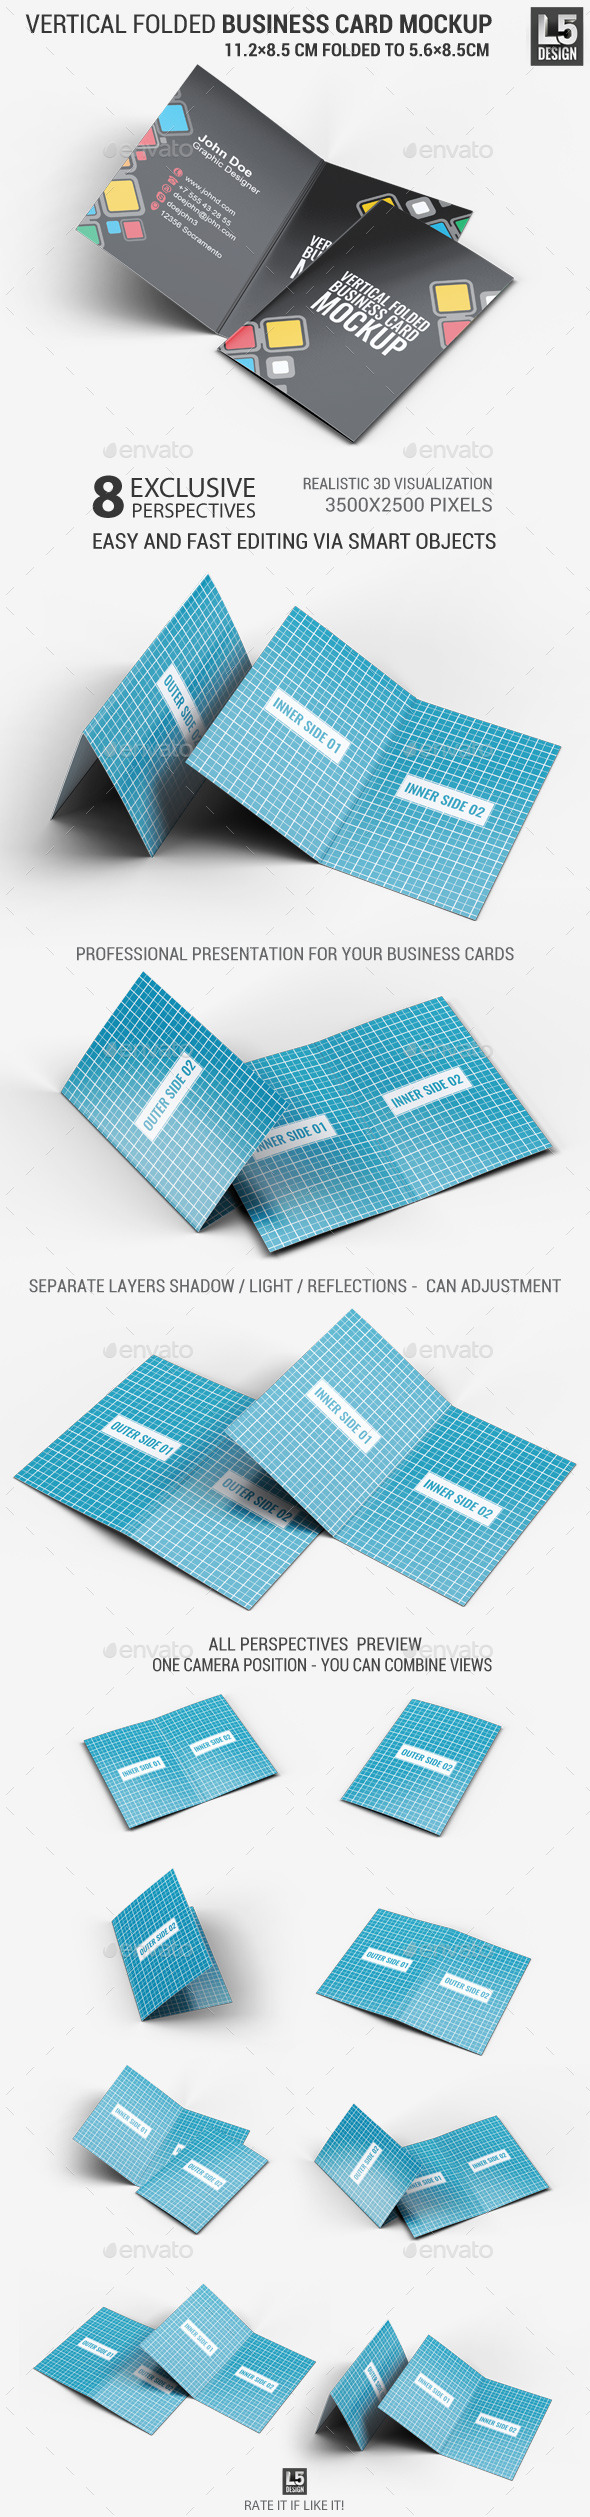 Vertical Folded Business Card Mock-Up - Business Cards Print